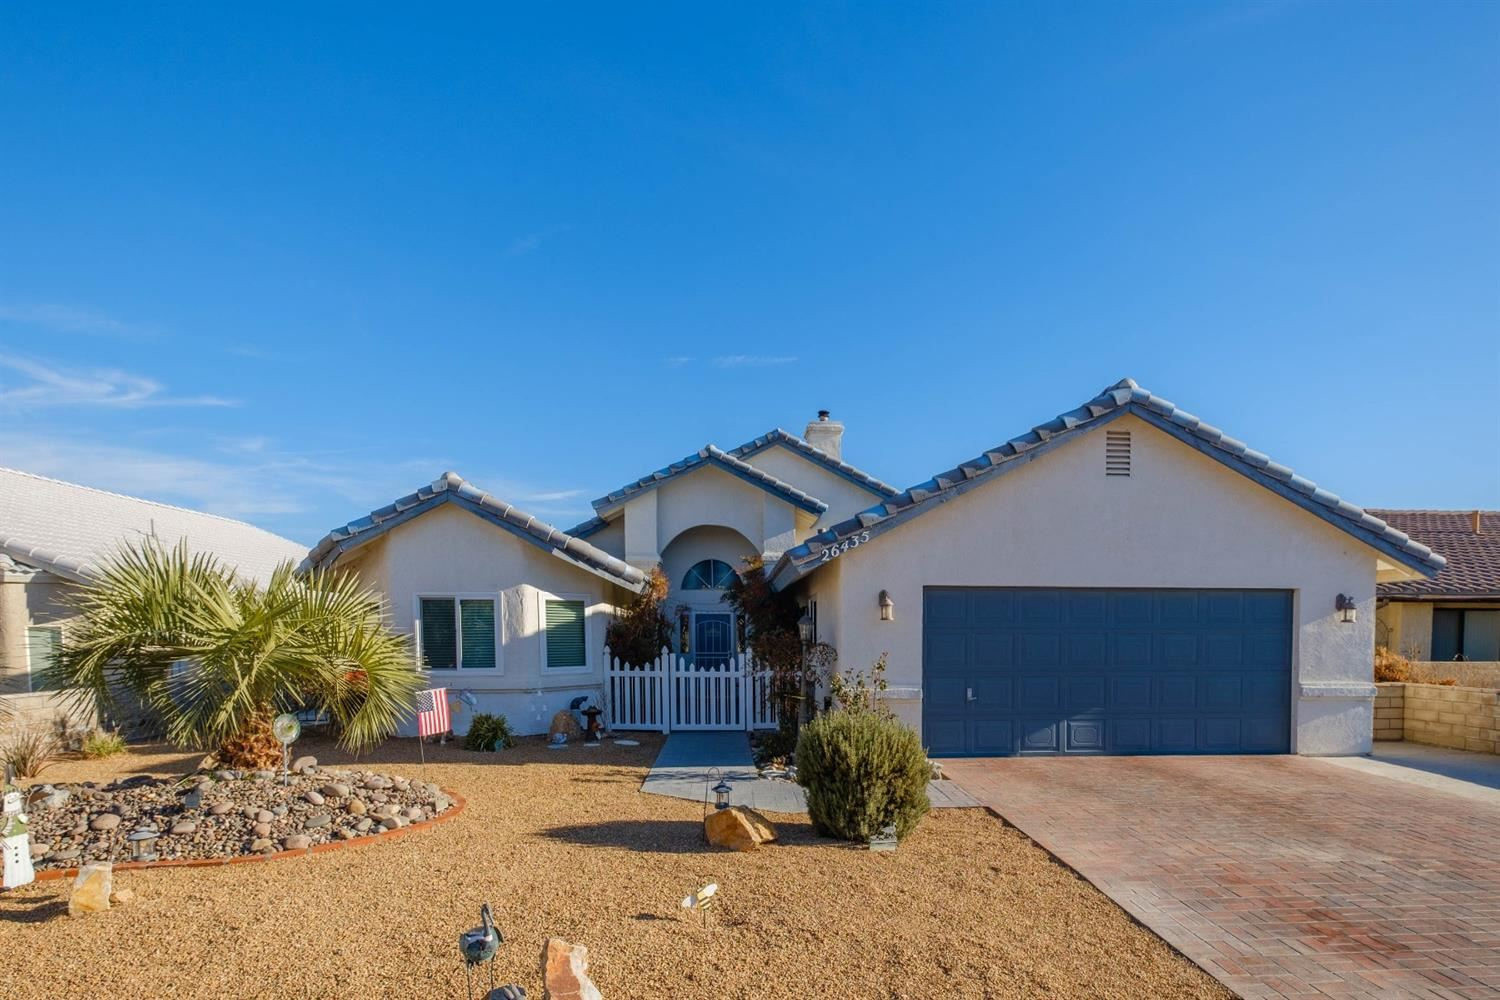 26435 Anchorage Lane, Helendale, CA 92342 - #: 531257